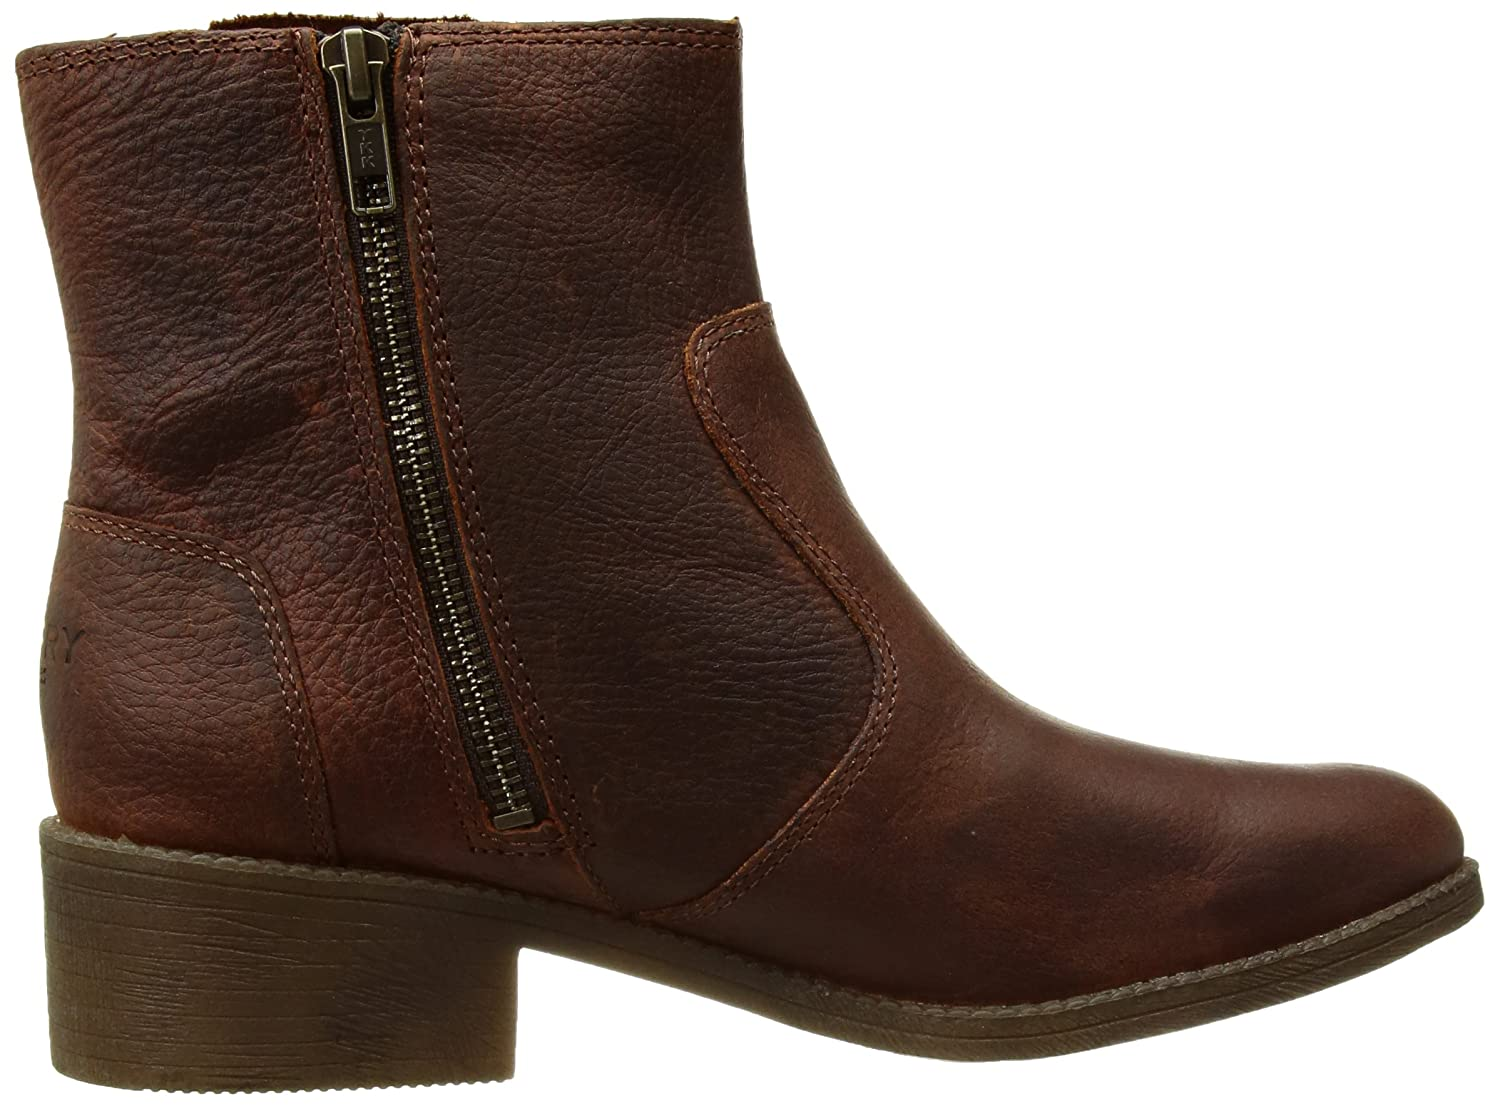 Sperry Top-Sider Women's B01MU2QMLT Juniper Glyn Ankle Boot B01MU2QMLT Women's 8 B(M) US|Rust ae055b